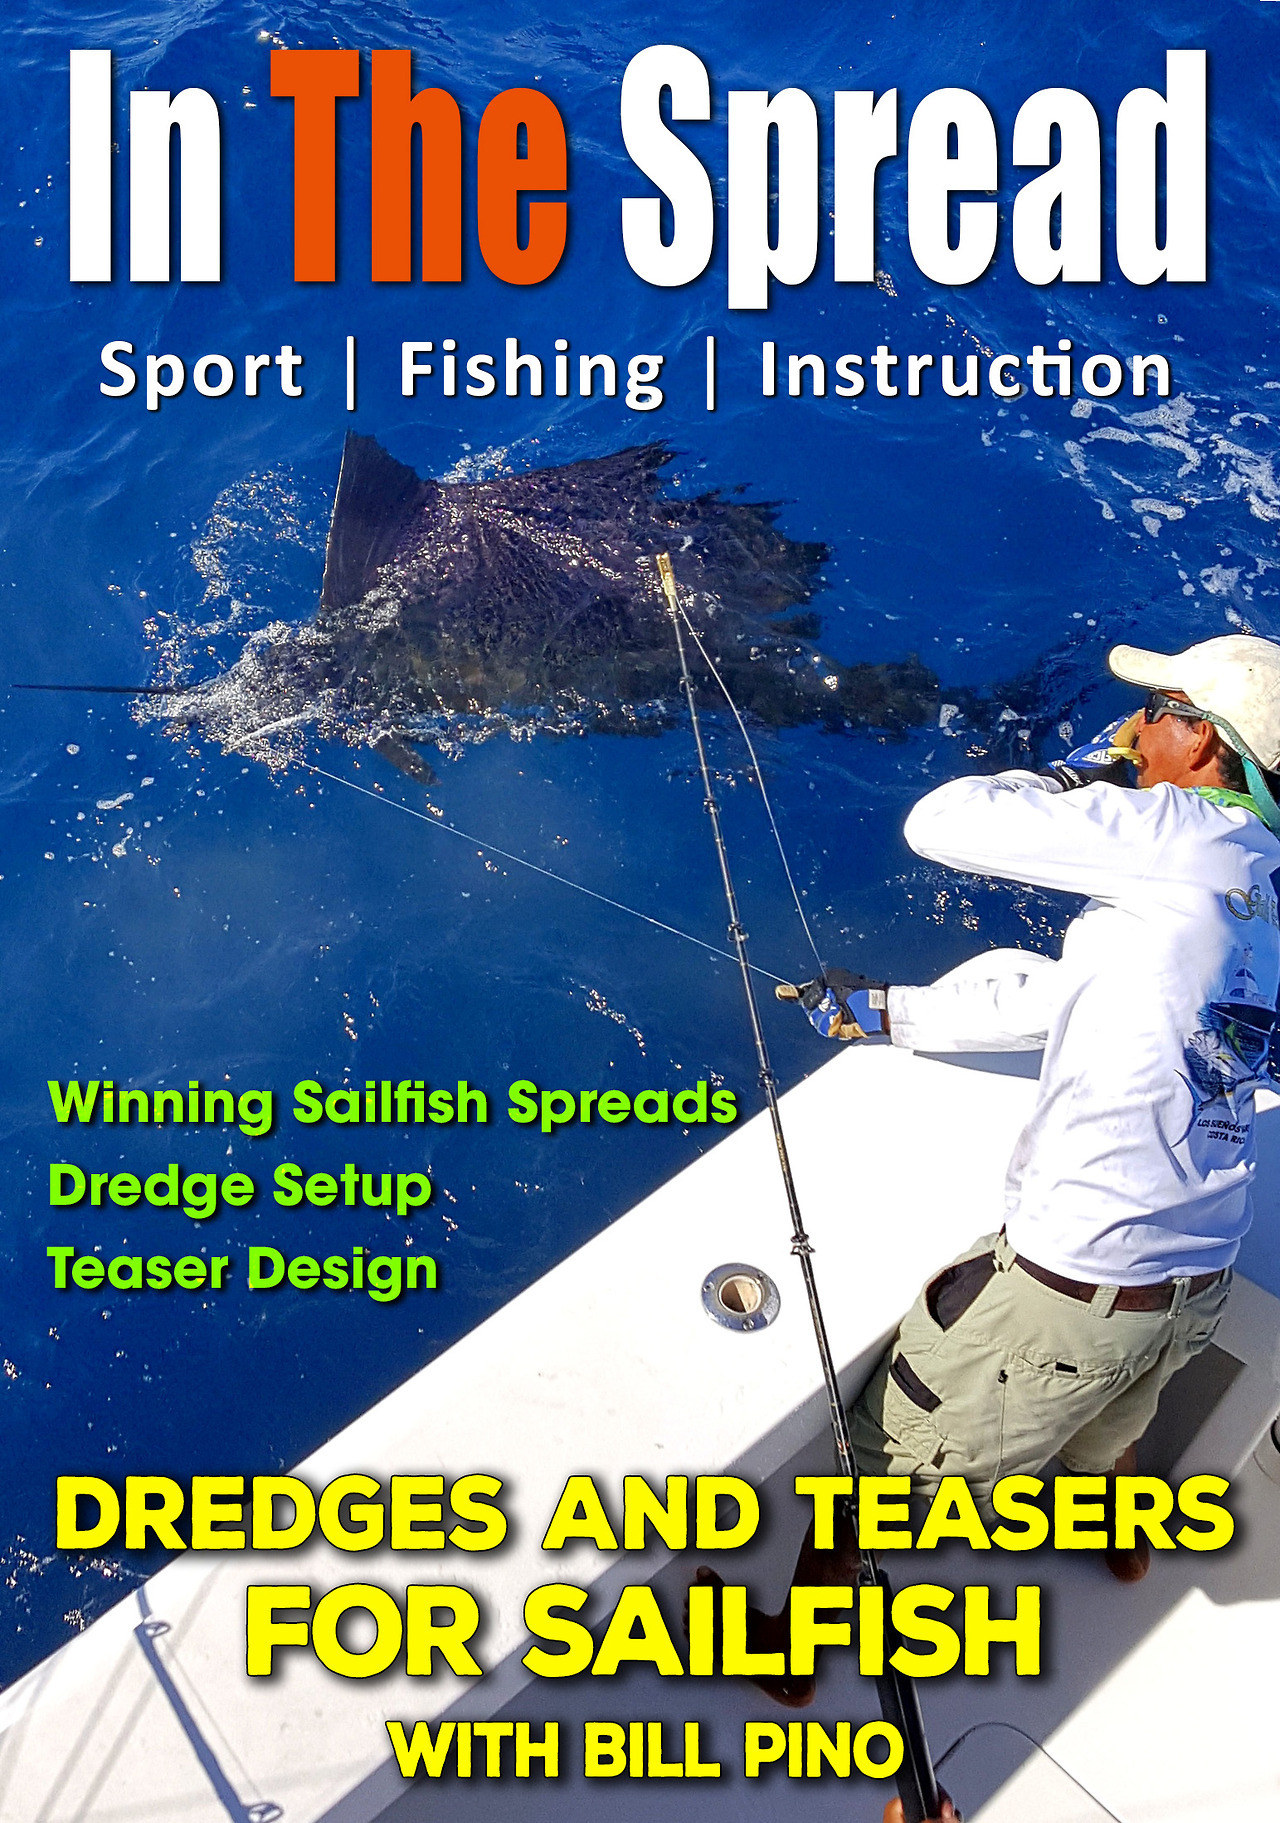 dredge fishing teasers in the spread fishing video squid nation bill pino